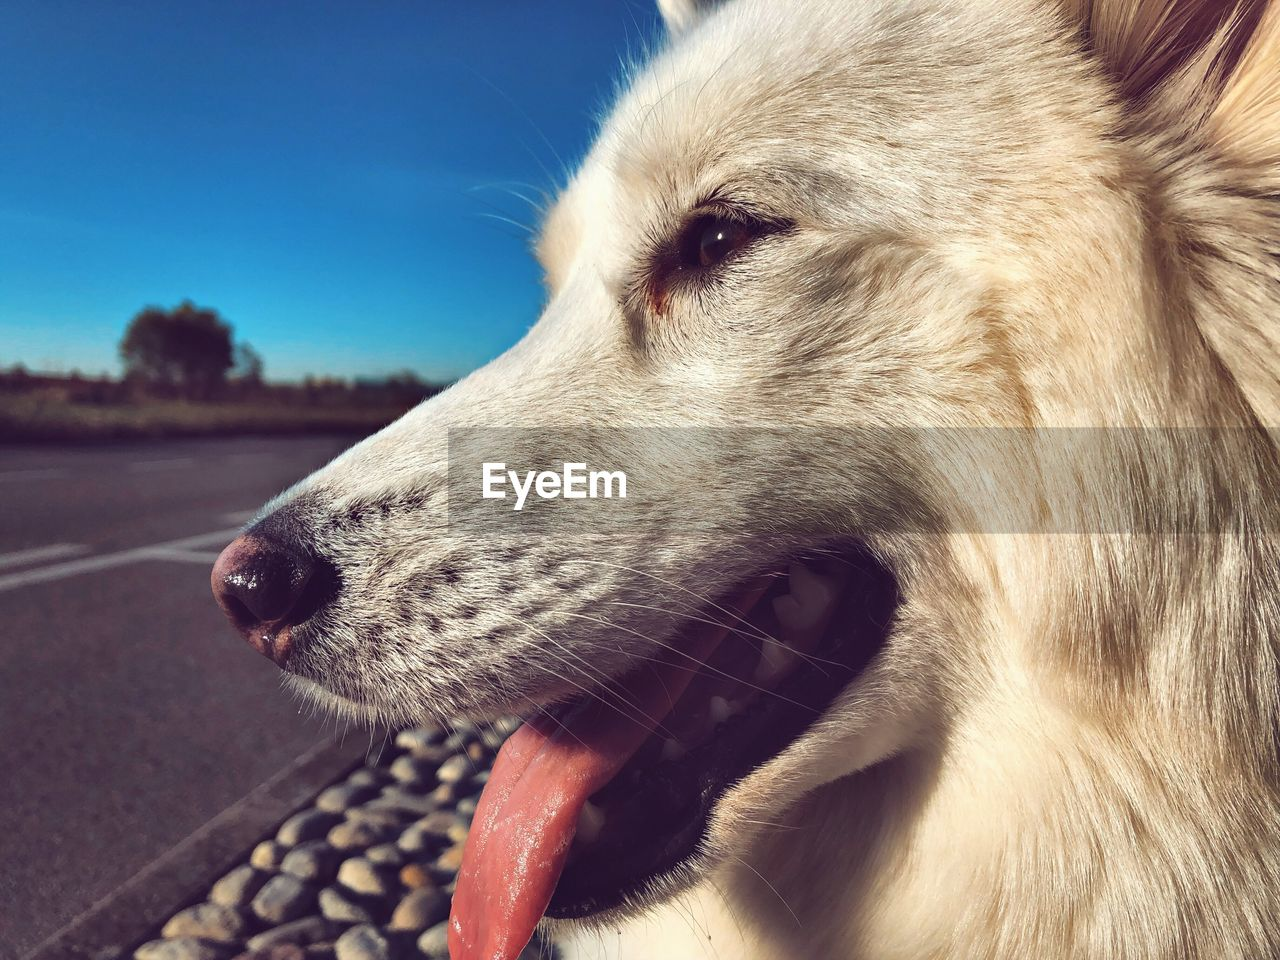 one animal, animal, animal themes, mammal, domestic animals, domestic, vertebrate, pets, close-up, animal body part, dog, canine, looking away, looking, animal head, no people, focus on foreground, day, side view, sky, mouth open, animal tongue, profile view, whisker, animal mouth, snout